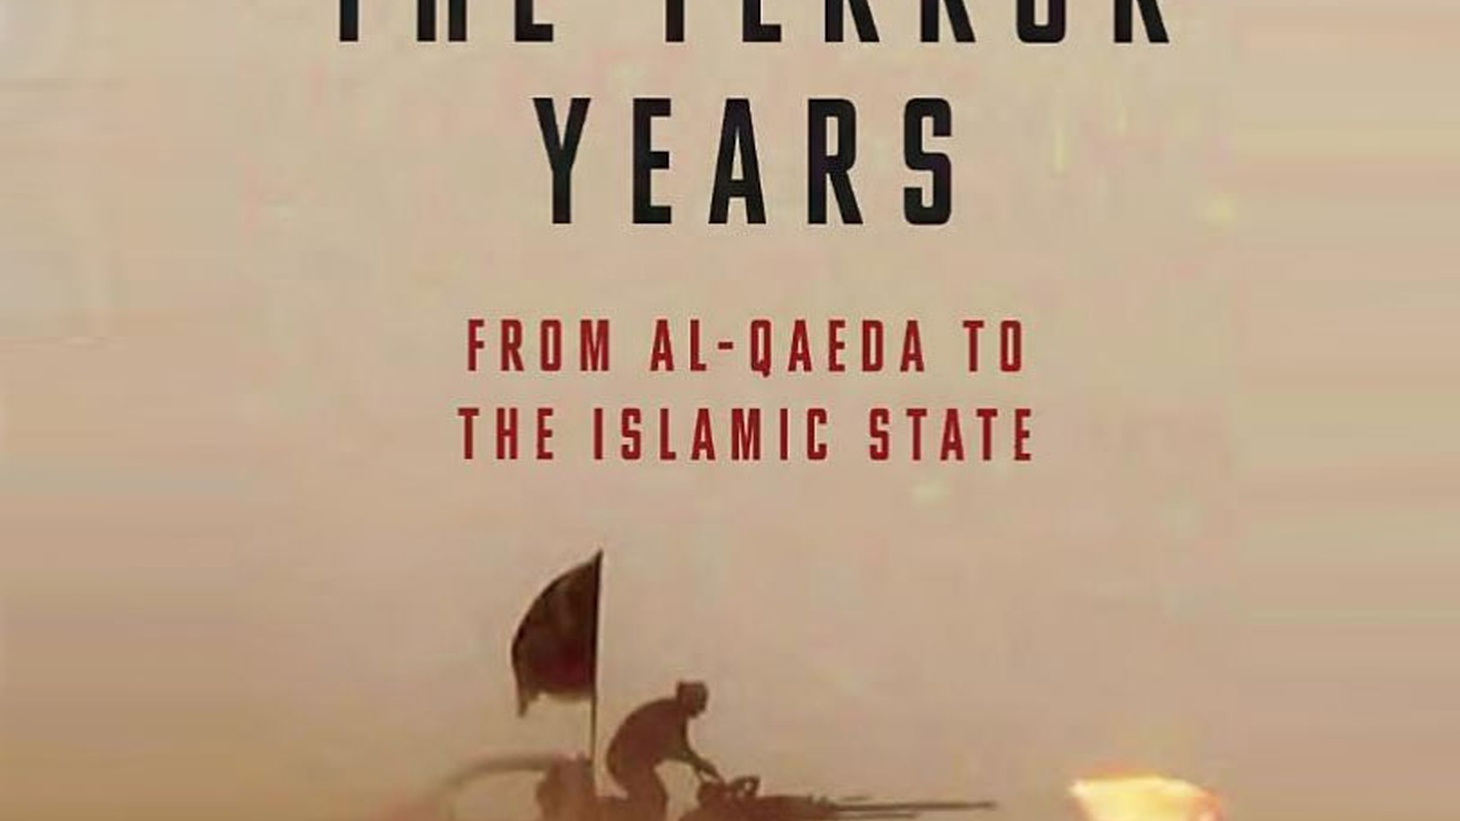 The September 11 attacks on American soil changed the national consciousness by creating a new awareness about al-Qaeda and the threat of jihad. Pulitzer Prize-winner Lawrence Wright has written extensively about how much has changed in the past 15 years.